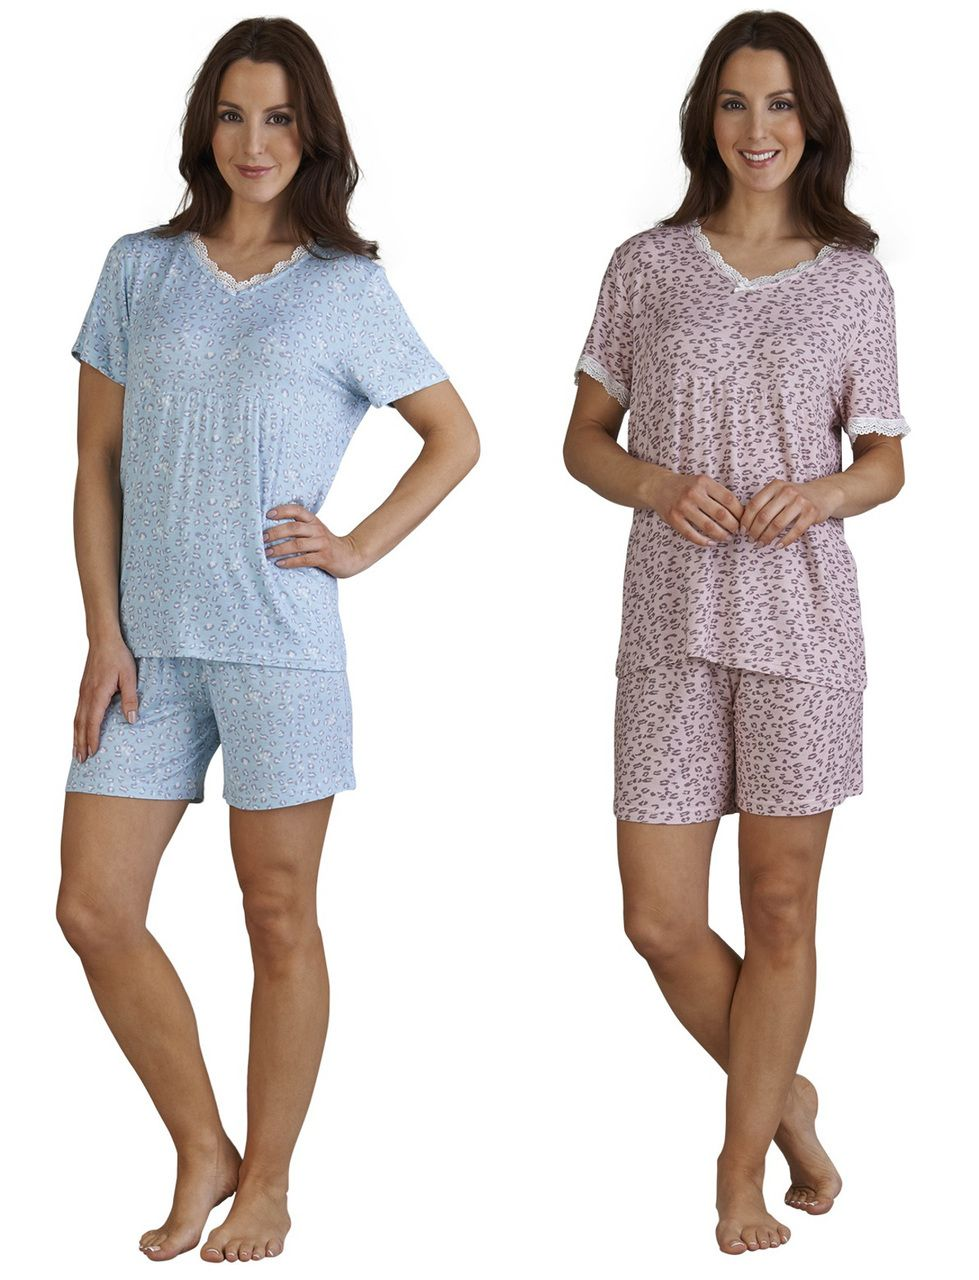 fa43a1fc32 Ladies Slenderella Gaspe Leopard Print Pyjamas Small - XL (Blue or Pink) -  Mill Outlets